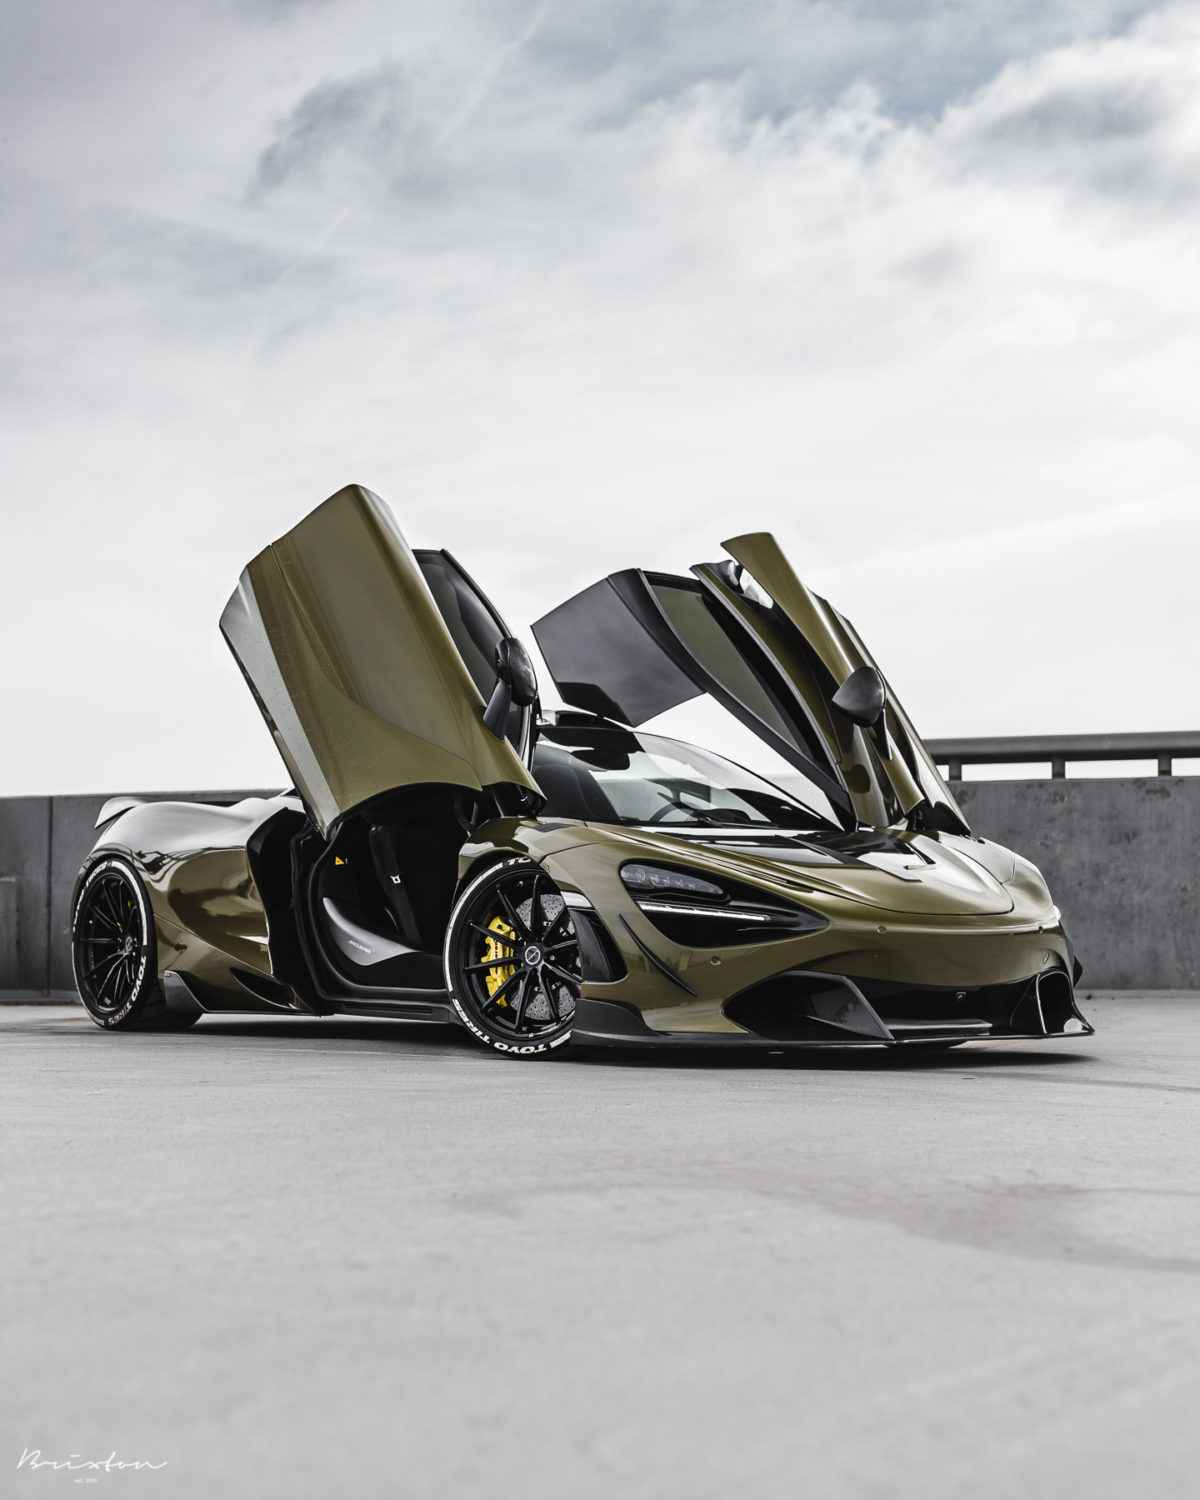 RDBLA Makes The Mclaren 720s More HardcoreRDBLA Makes The Mclaren 720s More Hardcore